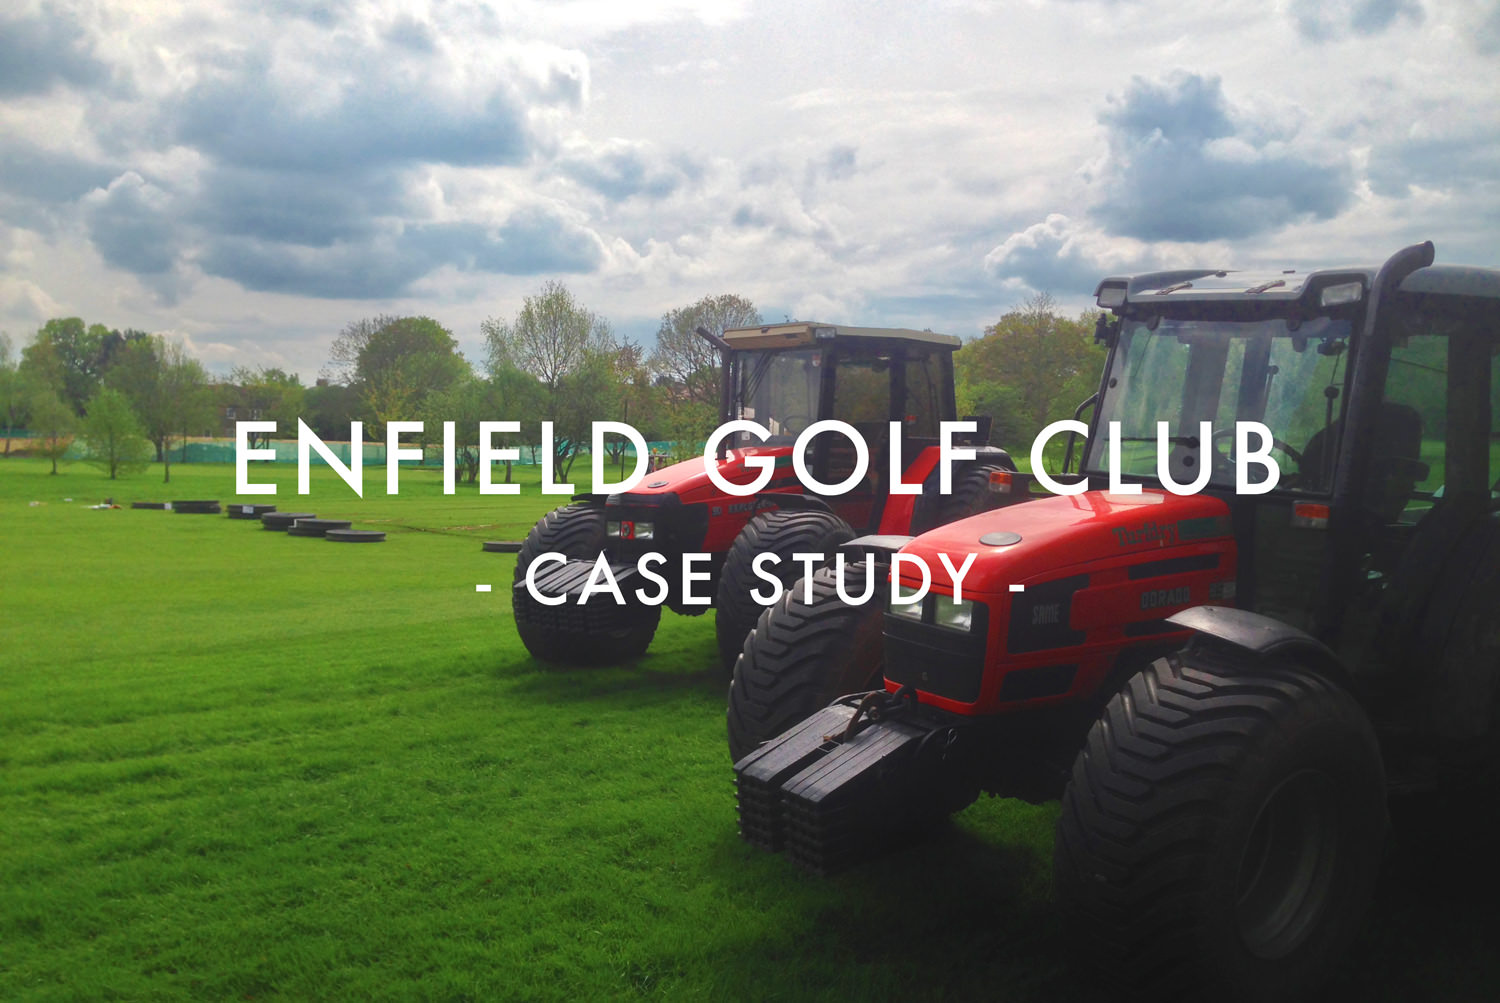 Enfield Golf Club Case Study